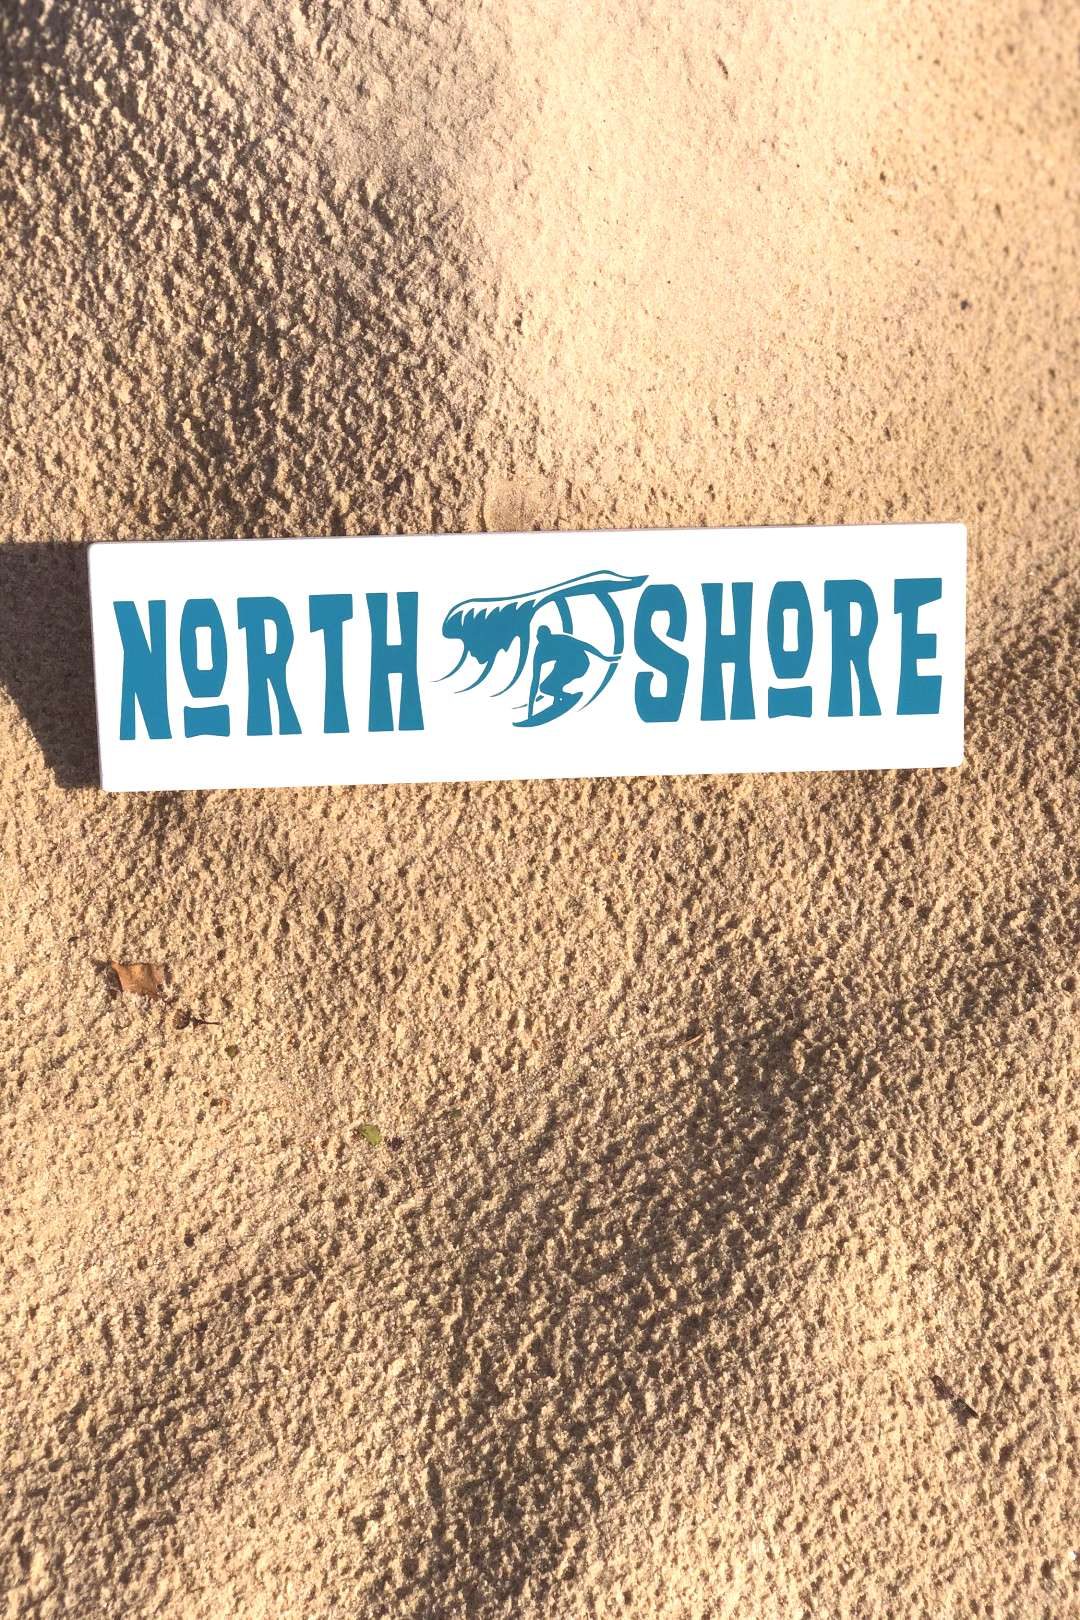 Excited to share this item from my shop North Shore Oahu Surfer Sign